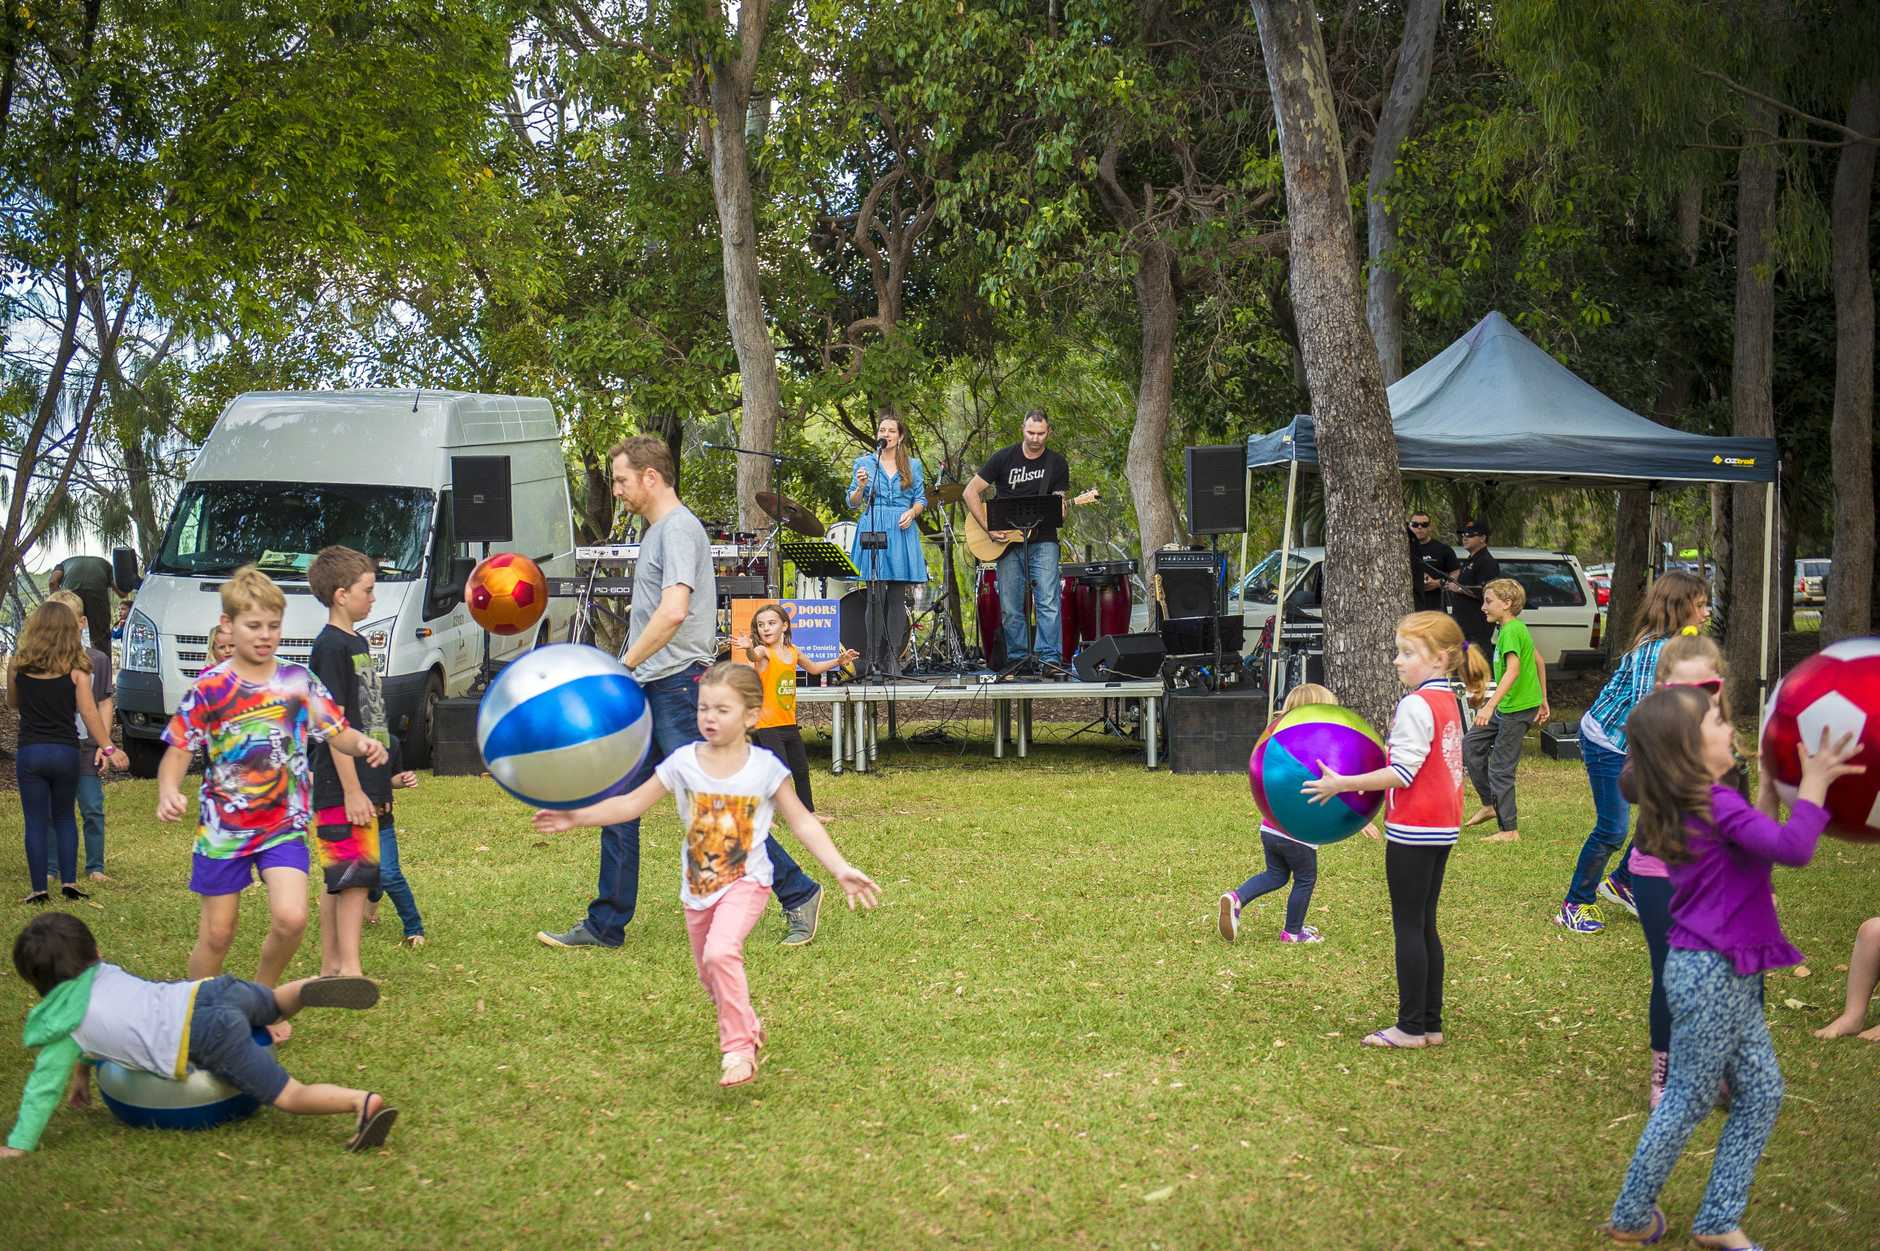 Children enjoying the music and festivities at the Beach Arts Music festival at Tannum Sands.